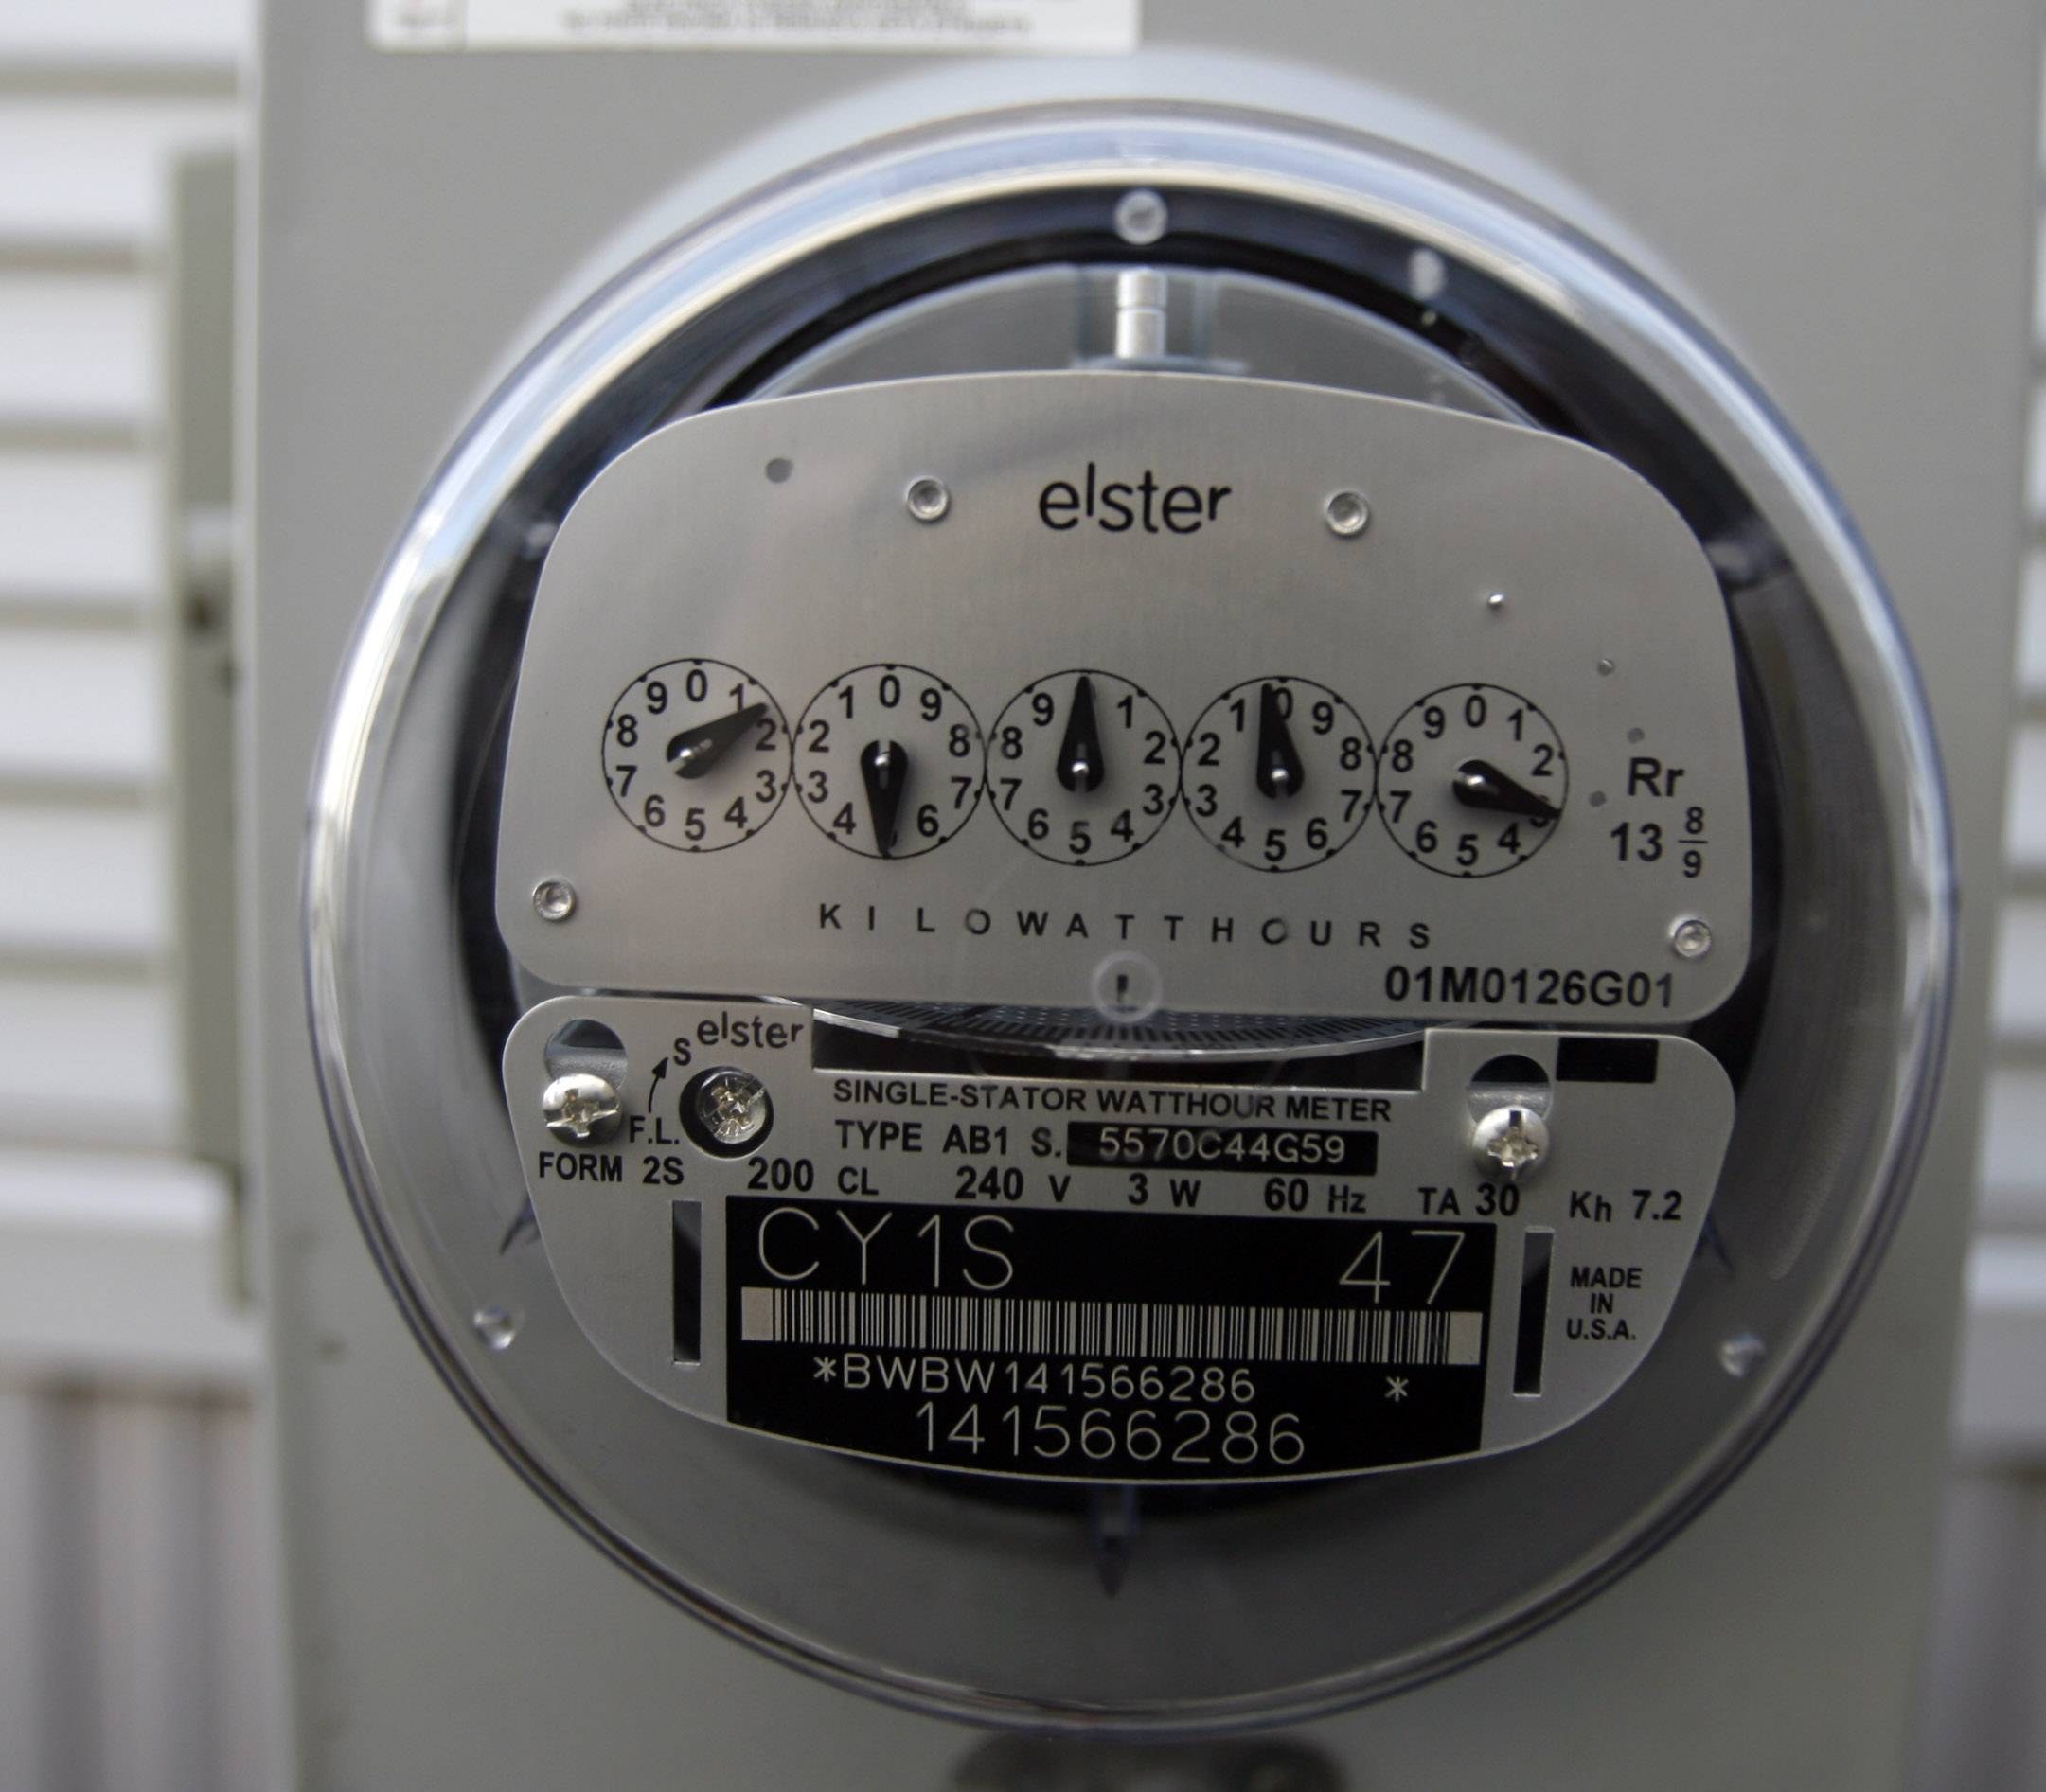 ComEd said it will file a report on Friday with the Illinois Commerce Commission on its energy savings plan.